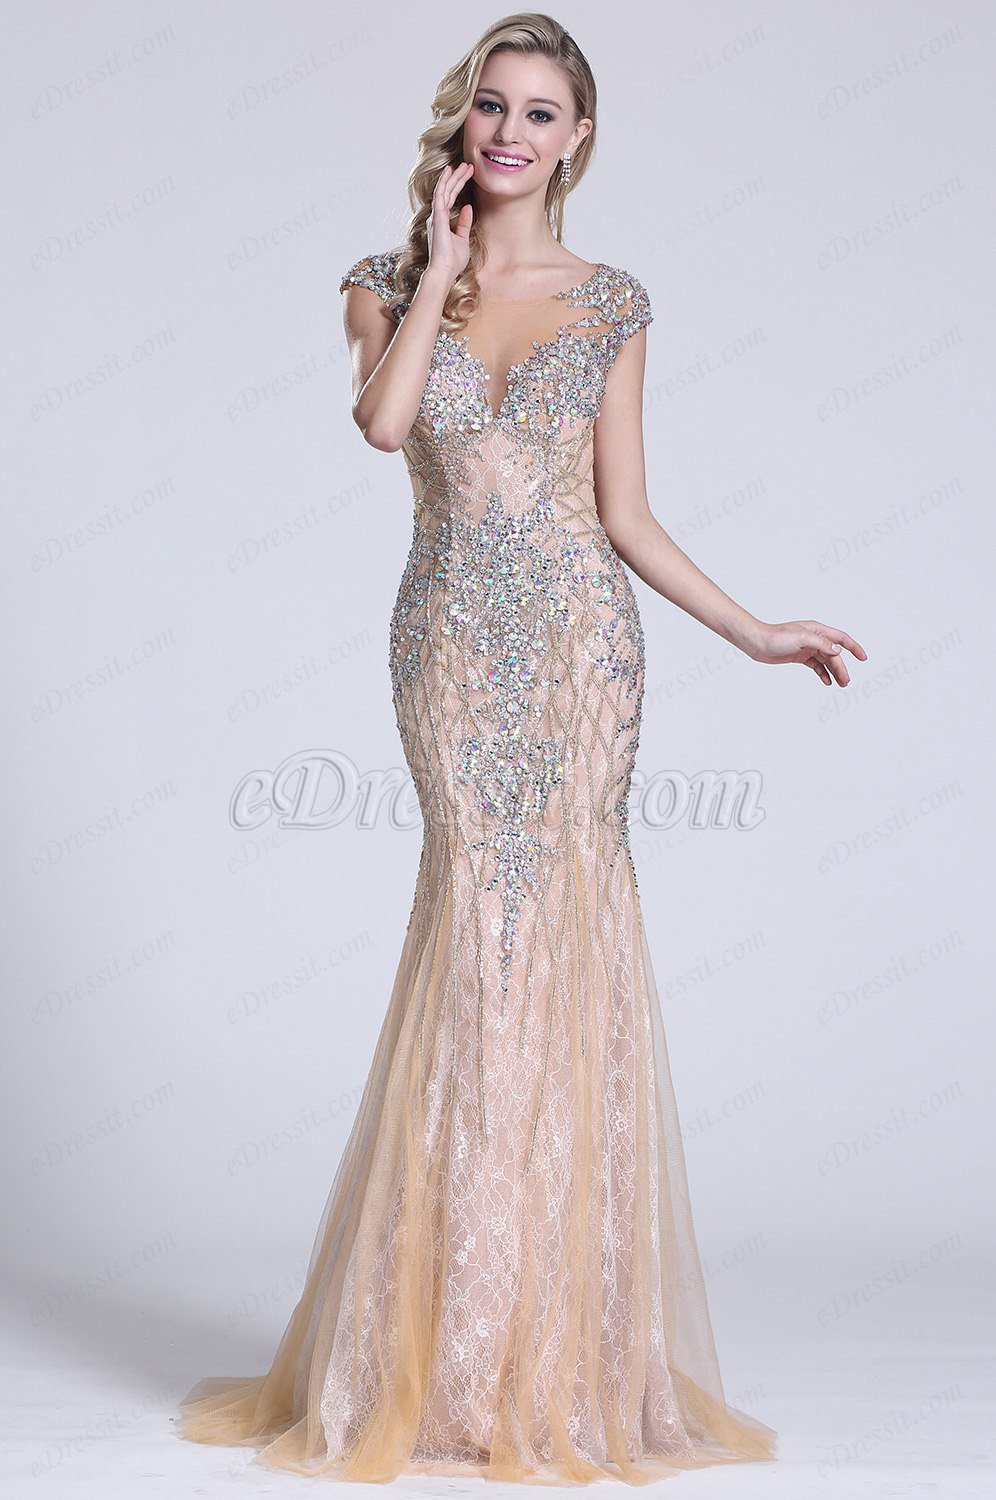 Sparkling Gown Refresh Your Look In This Beige Beaded Make A Bold Move Into Dress For Princess